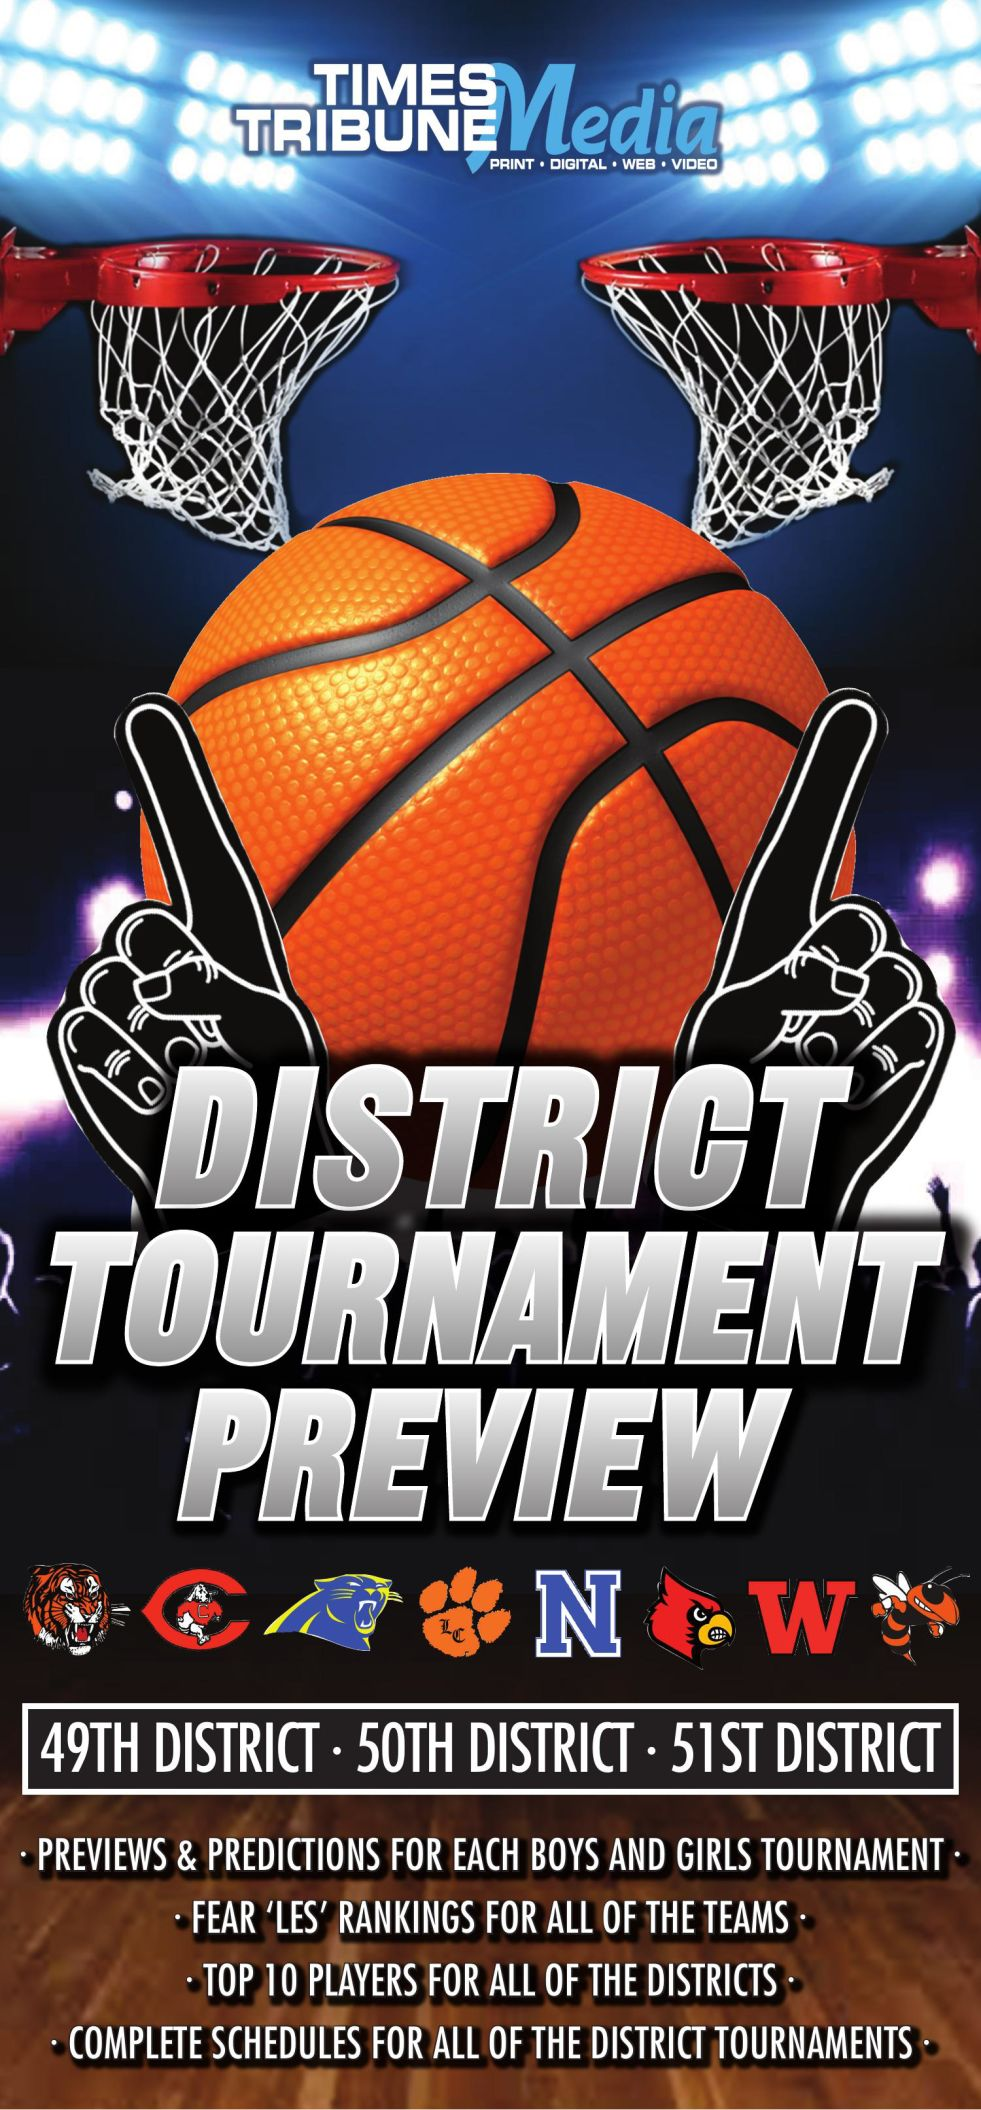 District Basketball Preview